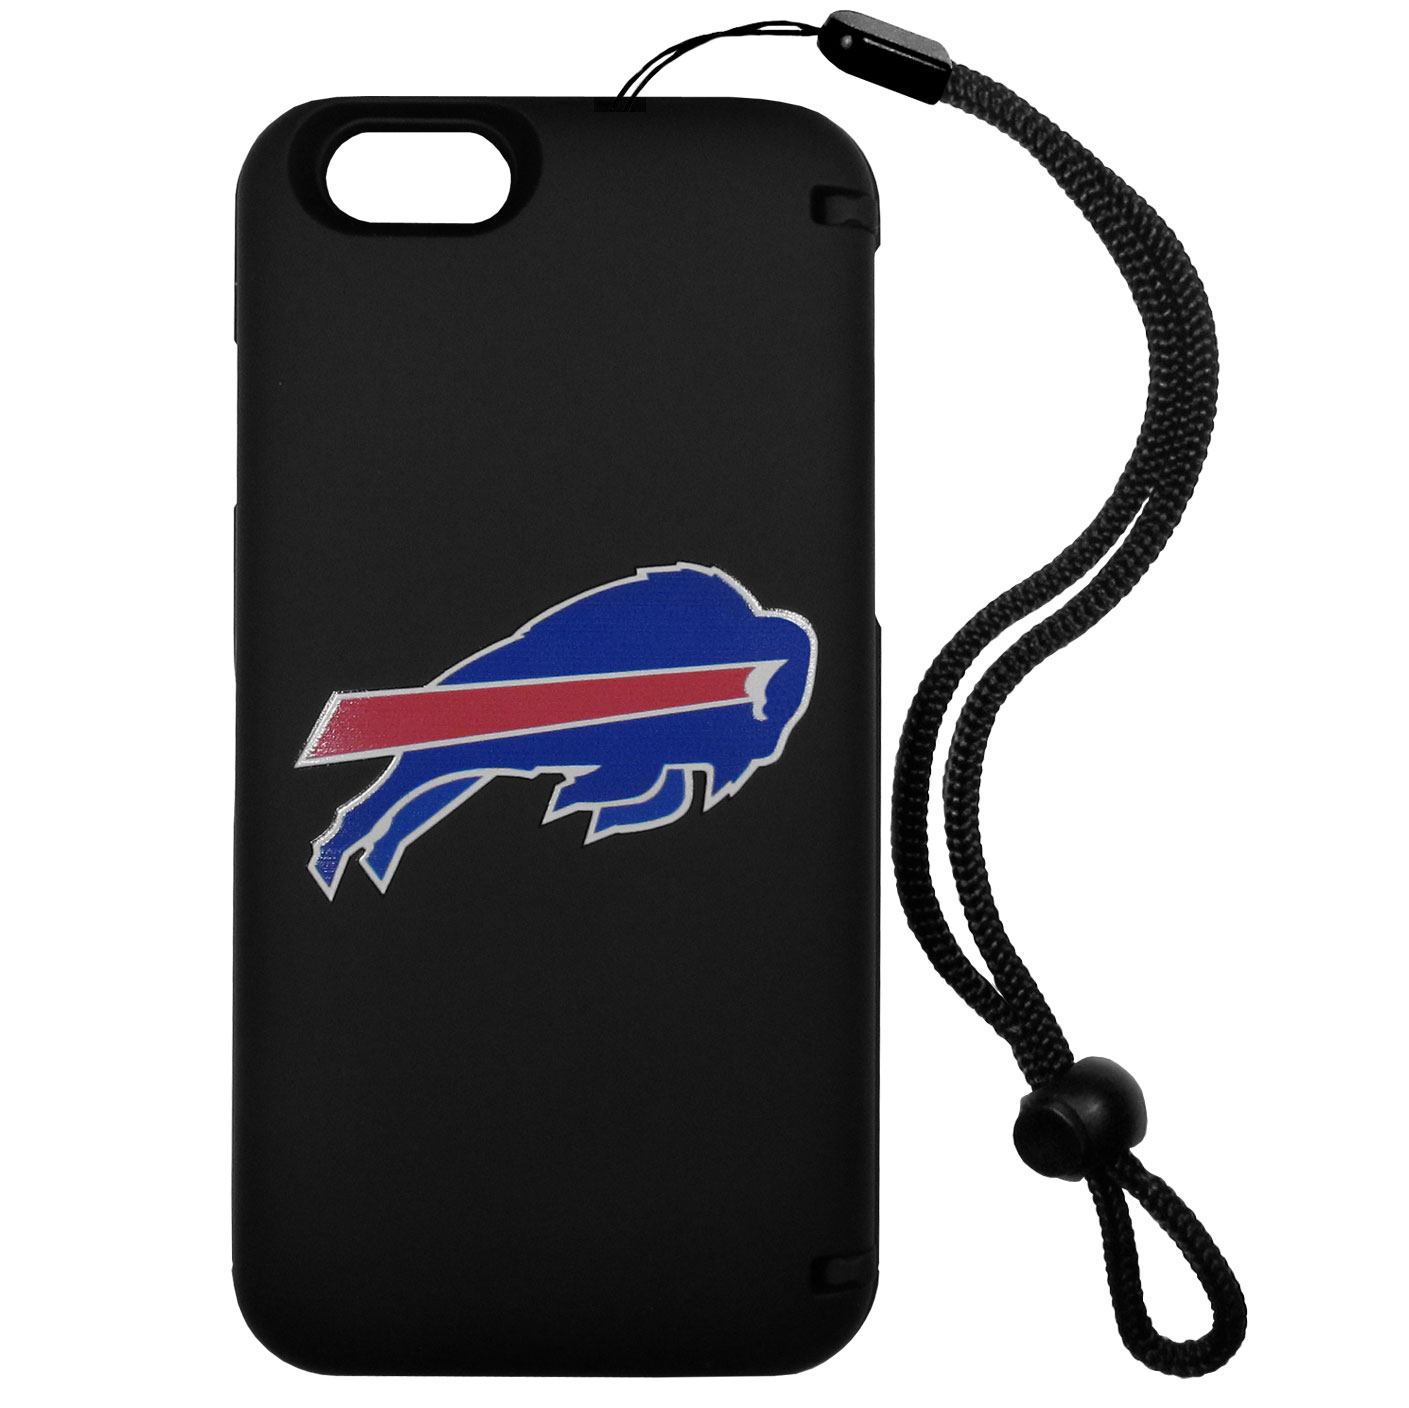 Buffalo Bills iPhone 6 Plus Everything Case - This case really does have everything but the kitchen sink! The hidden compartment lets you keep your cards, money and tickets to the big game safe and secure and has a compact mirror so you can make sure your game face is ready to go. It also comes with a kickstand to make chatting and watching videos a breeze. The wrist strap allows you to travel with ease with your everything case. If that's not enough, it also comes with the Buffalo Bills logo printed in expert detail on the front.